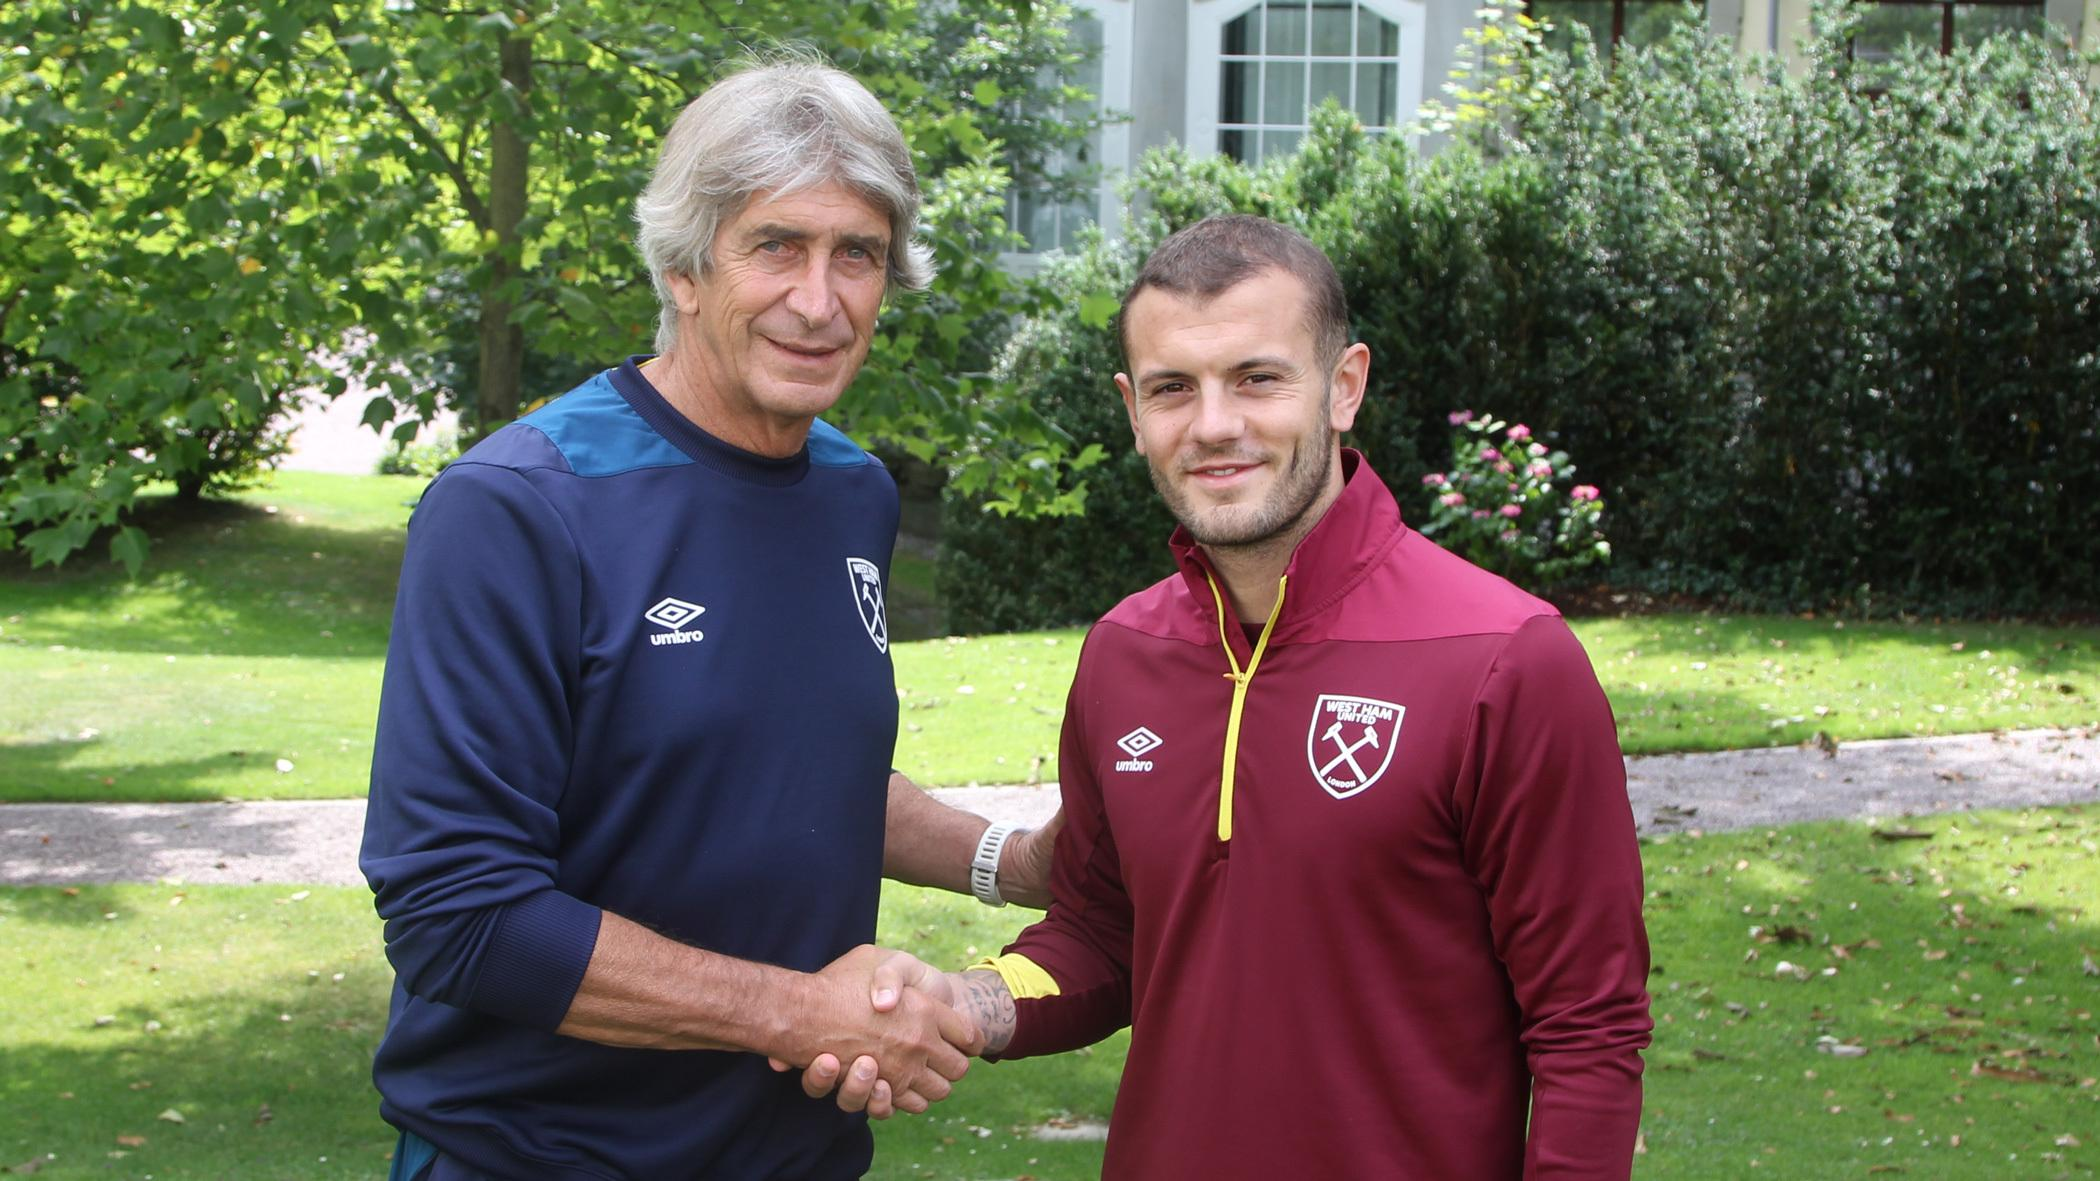 New West Ham boss Manuel Pellegrini is convinced his major summer signing jack Wilshere can prove the doubters wrong